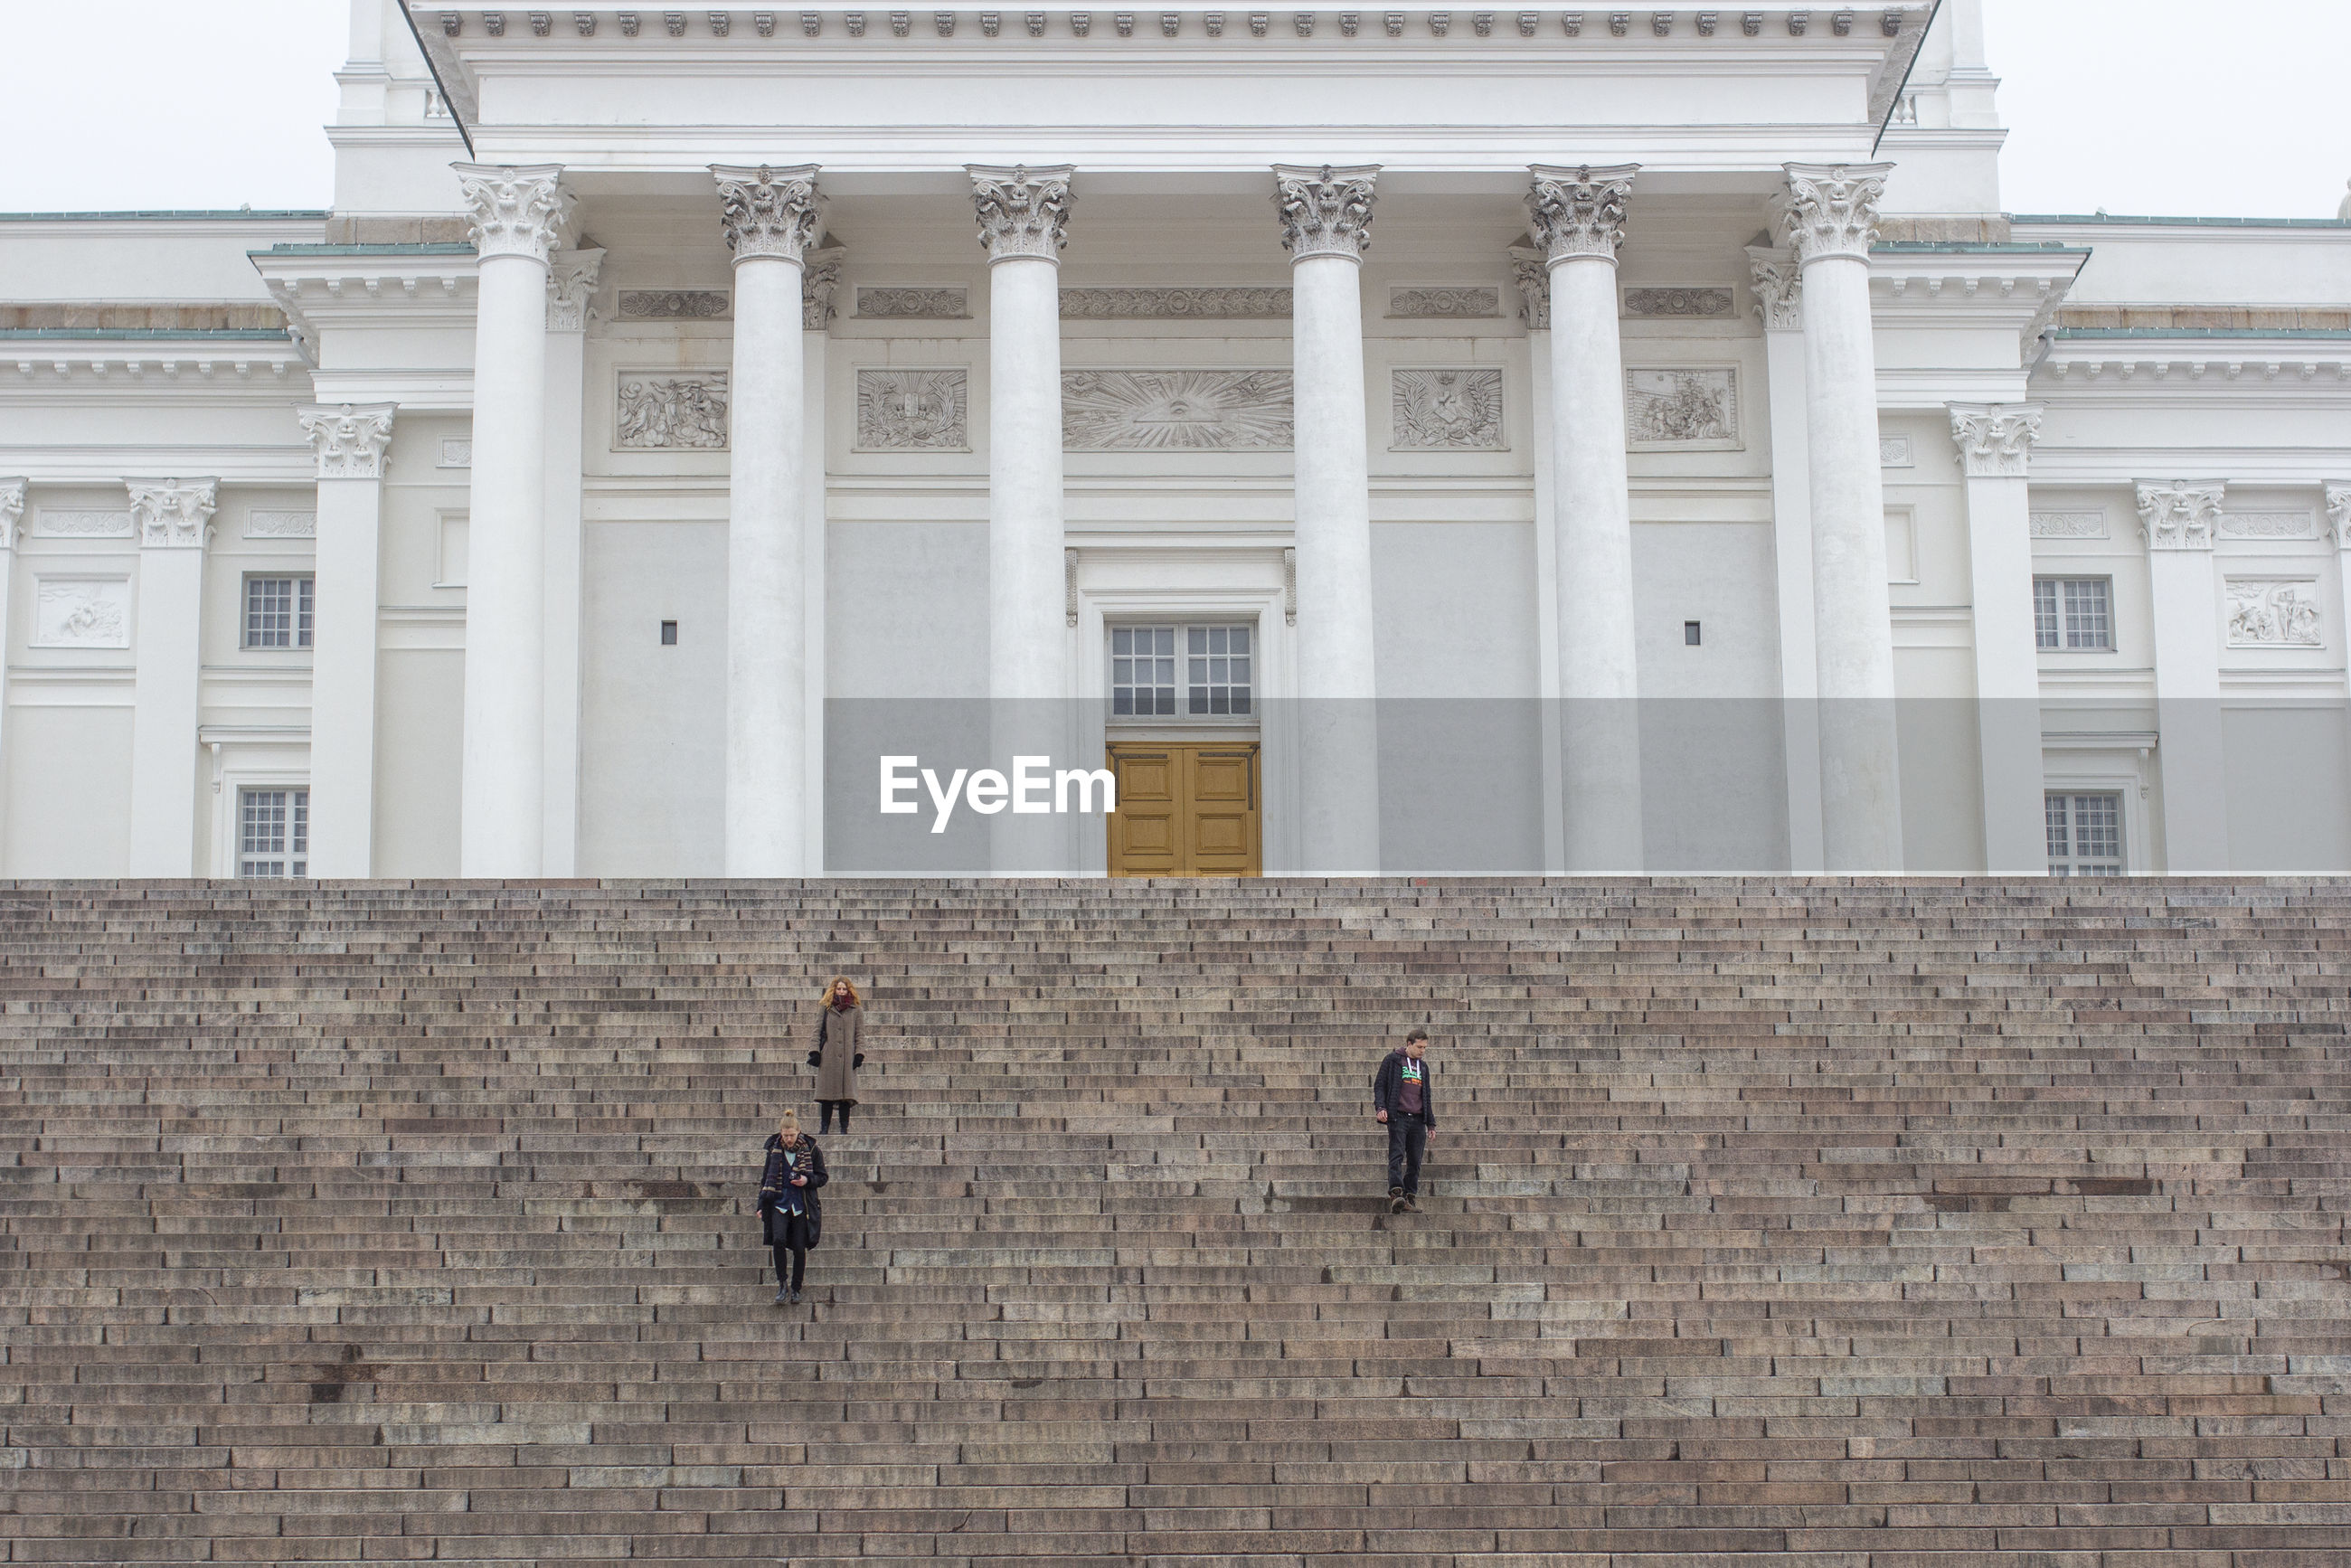 PEOPLE IN FRONT OF BUILDING